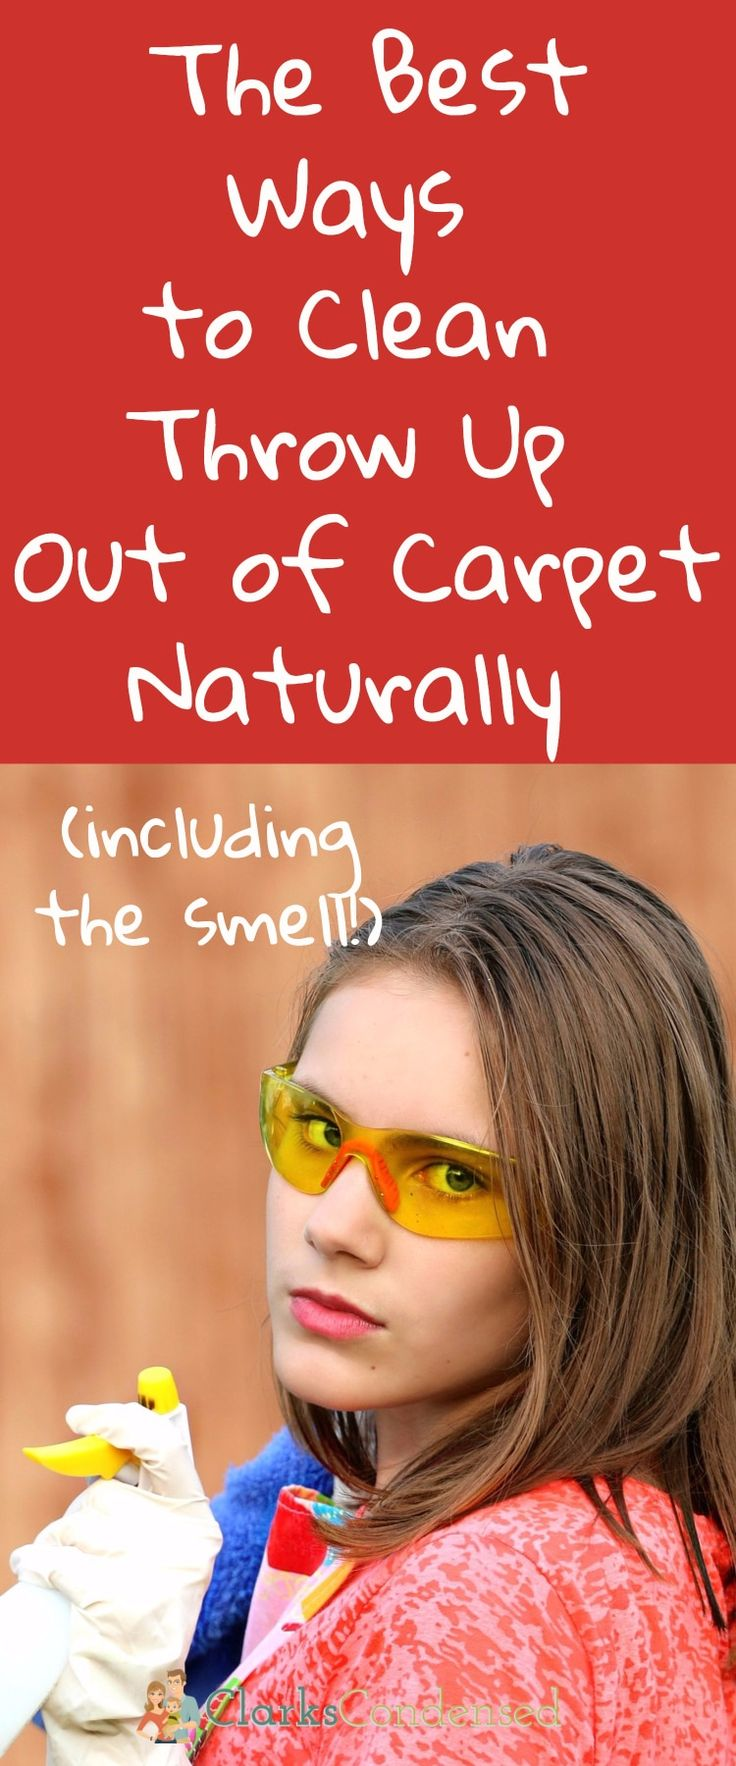 How to clean throw up out of carpet naturally including